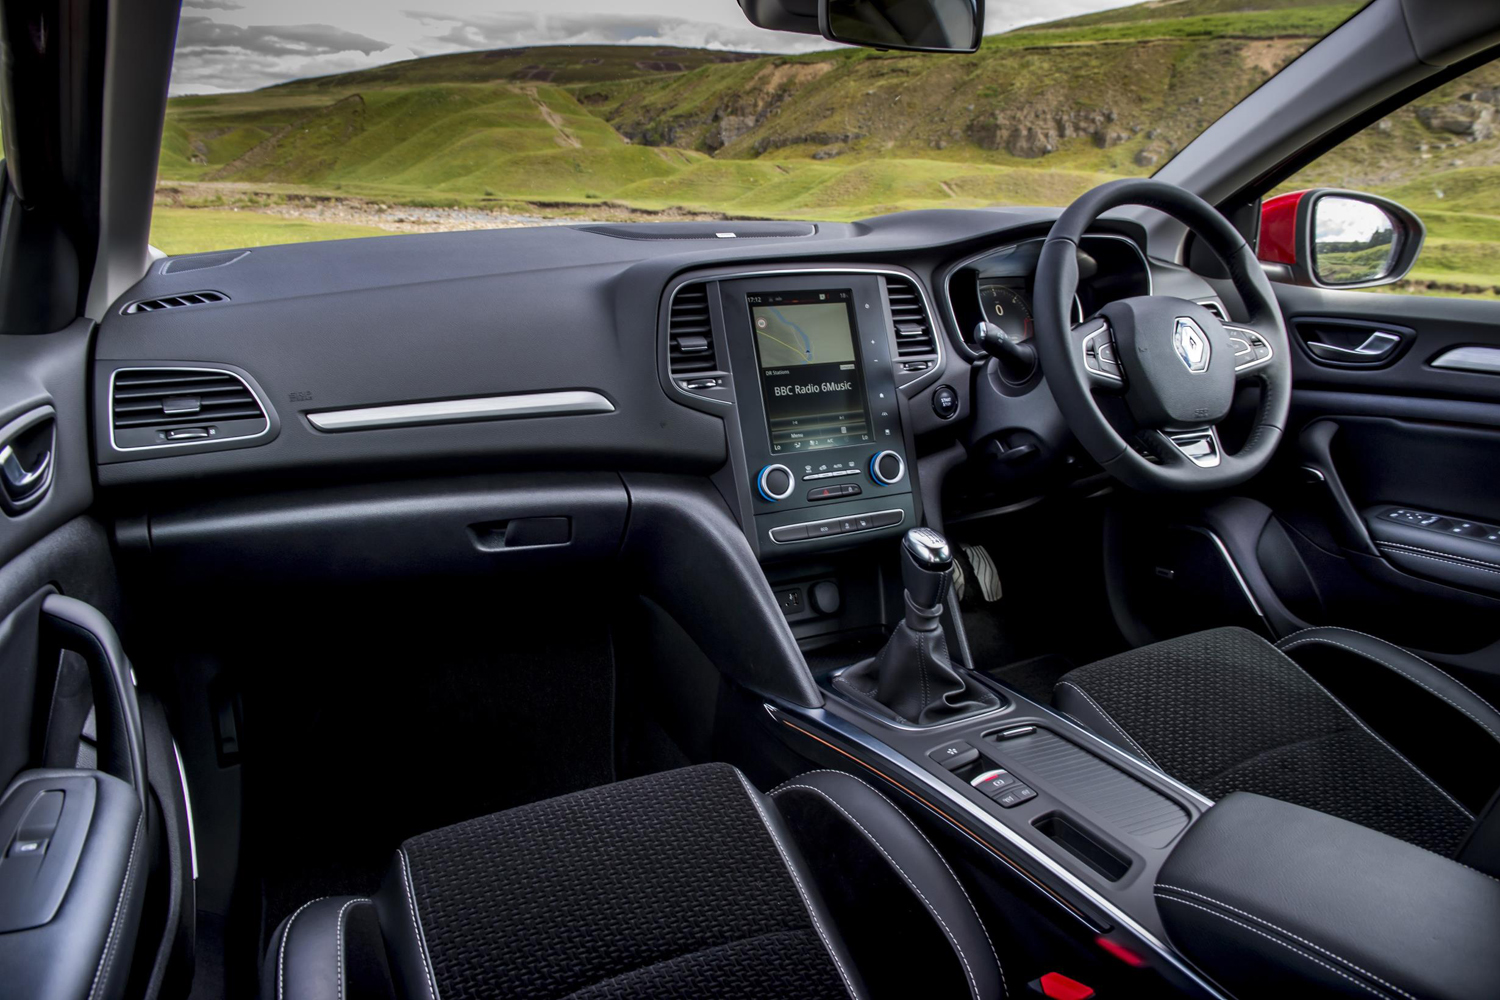 renault megane dynamique s nav dci 110 review. Black Bedroom Furniture Sets. Home Design Ideas